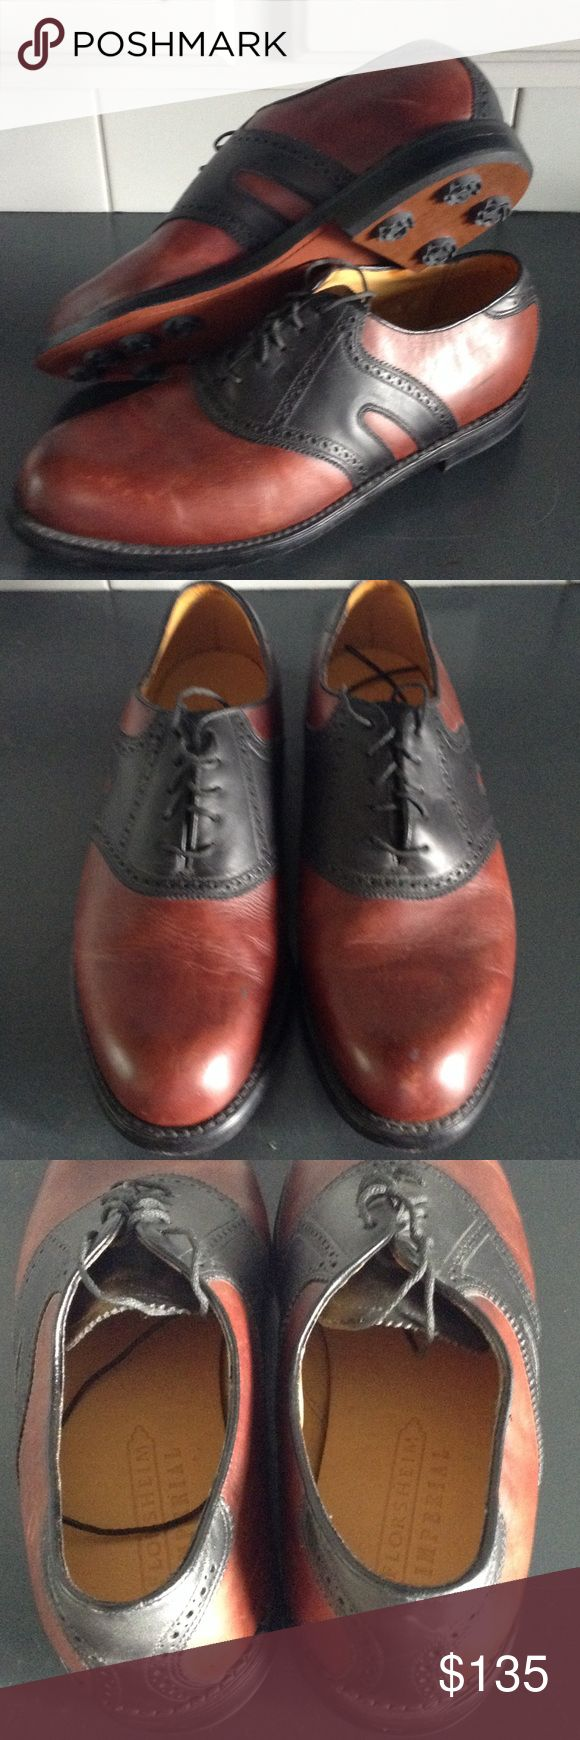 Florsheim Imperial NEW Leather Golf Shoes Men's Bought new and never used Leather uppers and Leather Soles Soft Spikes These shoes are very nice size 10D Florsheim Shoes Athletic Shoes